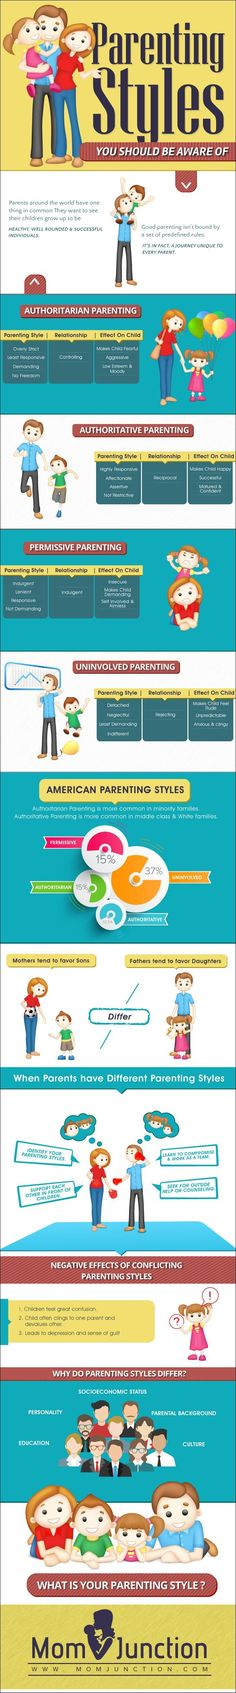 Parenting styles cha